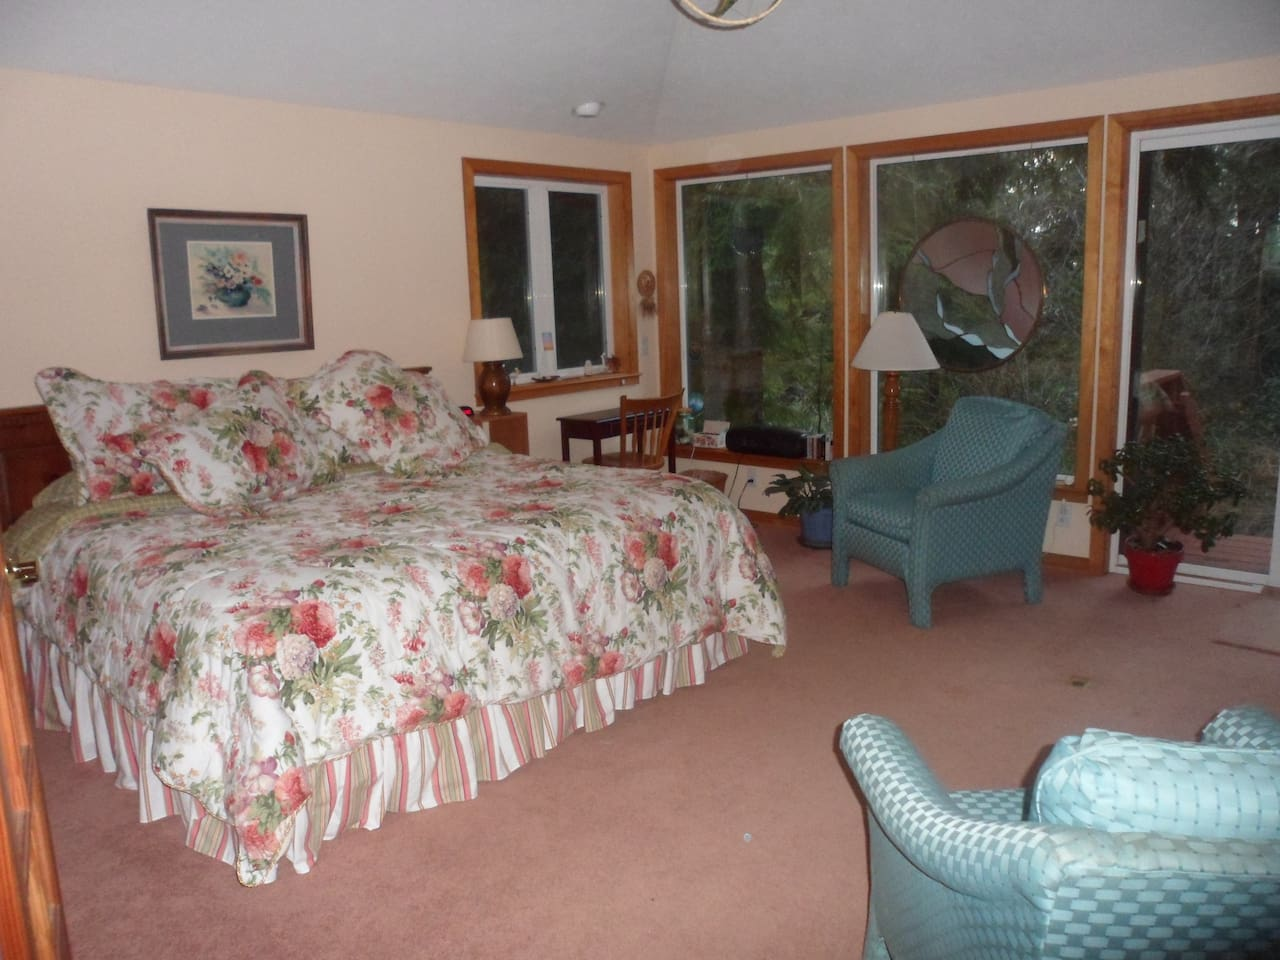 Spacious bedroom with king or two twin beds, one fold out single bed when needed, all nestled in the Oregon coastal woods!